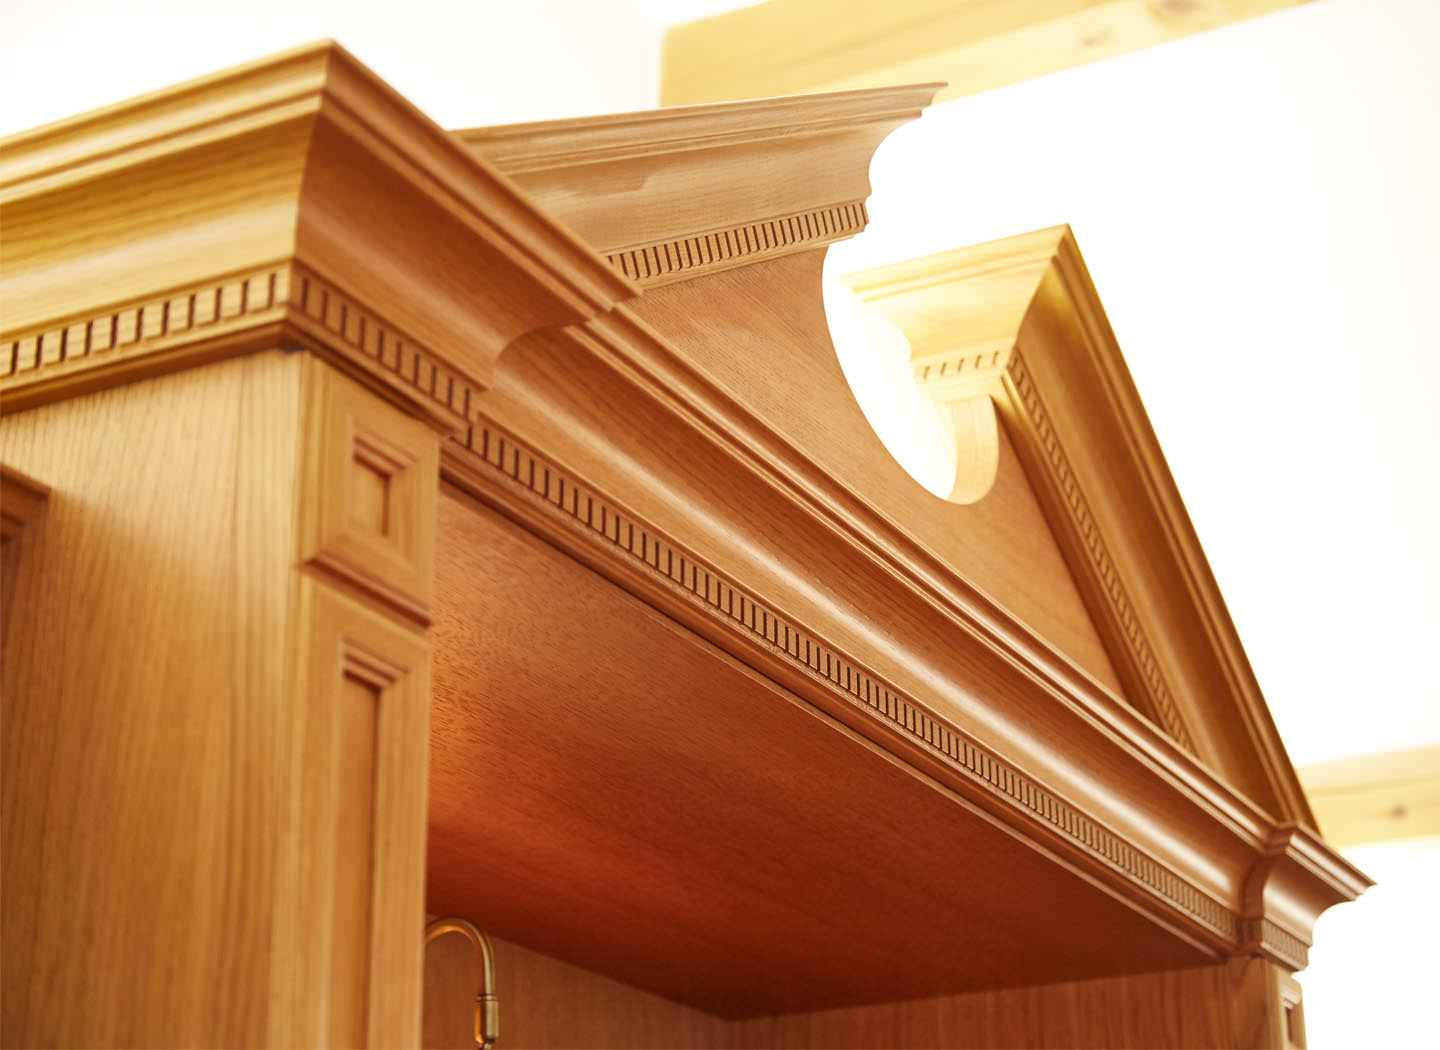 Fitted bookcase pediment detail